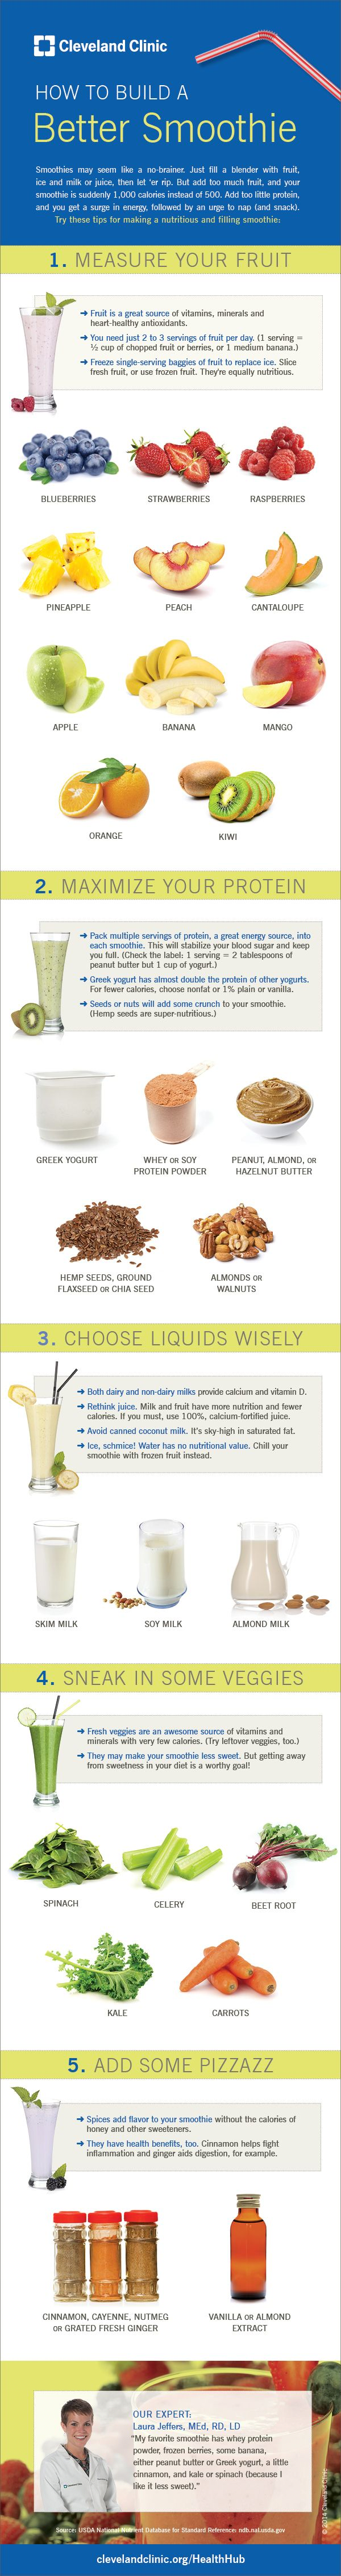 ... Super Healthy Smoothie by clevelandclinic #Smoothie #Healthy #